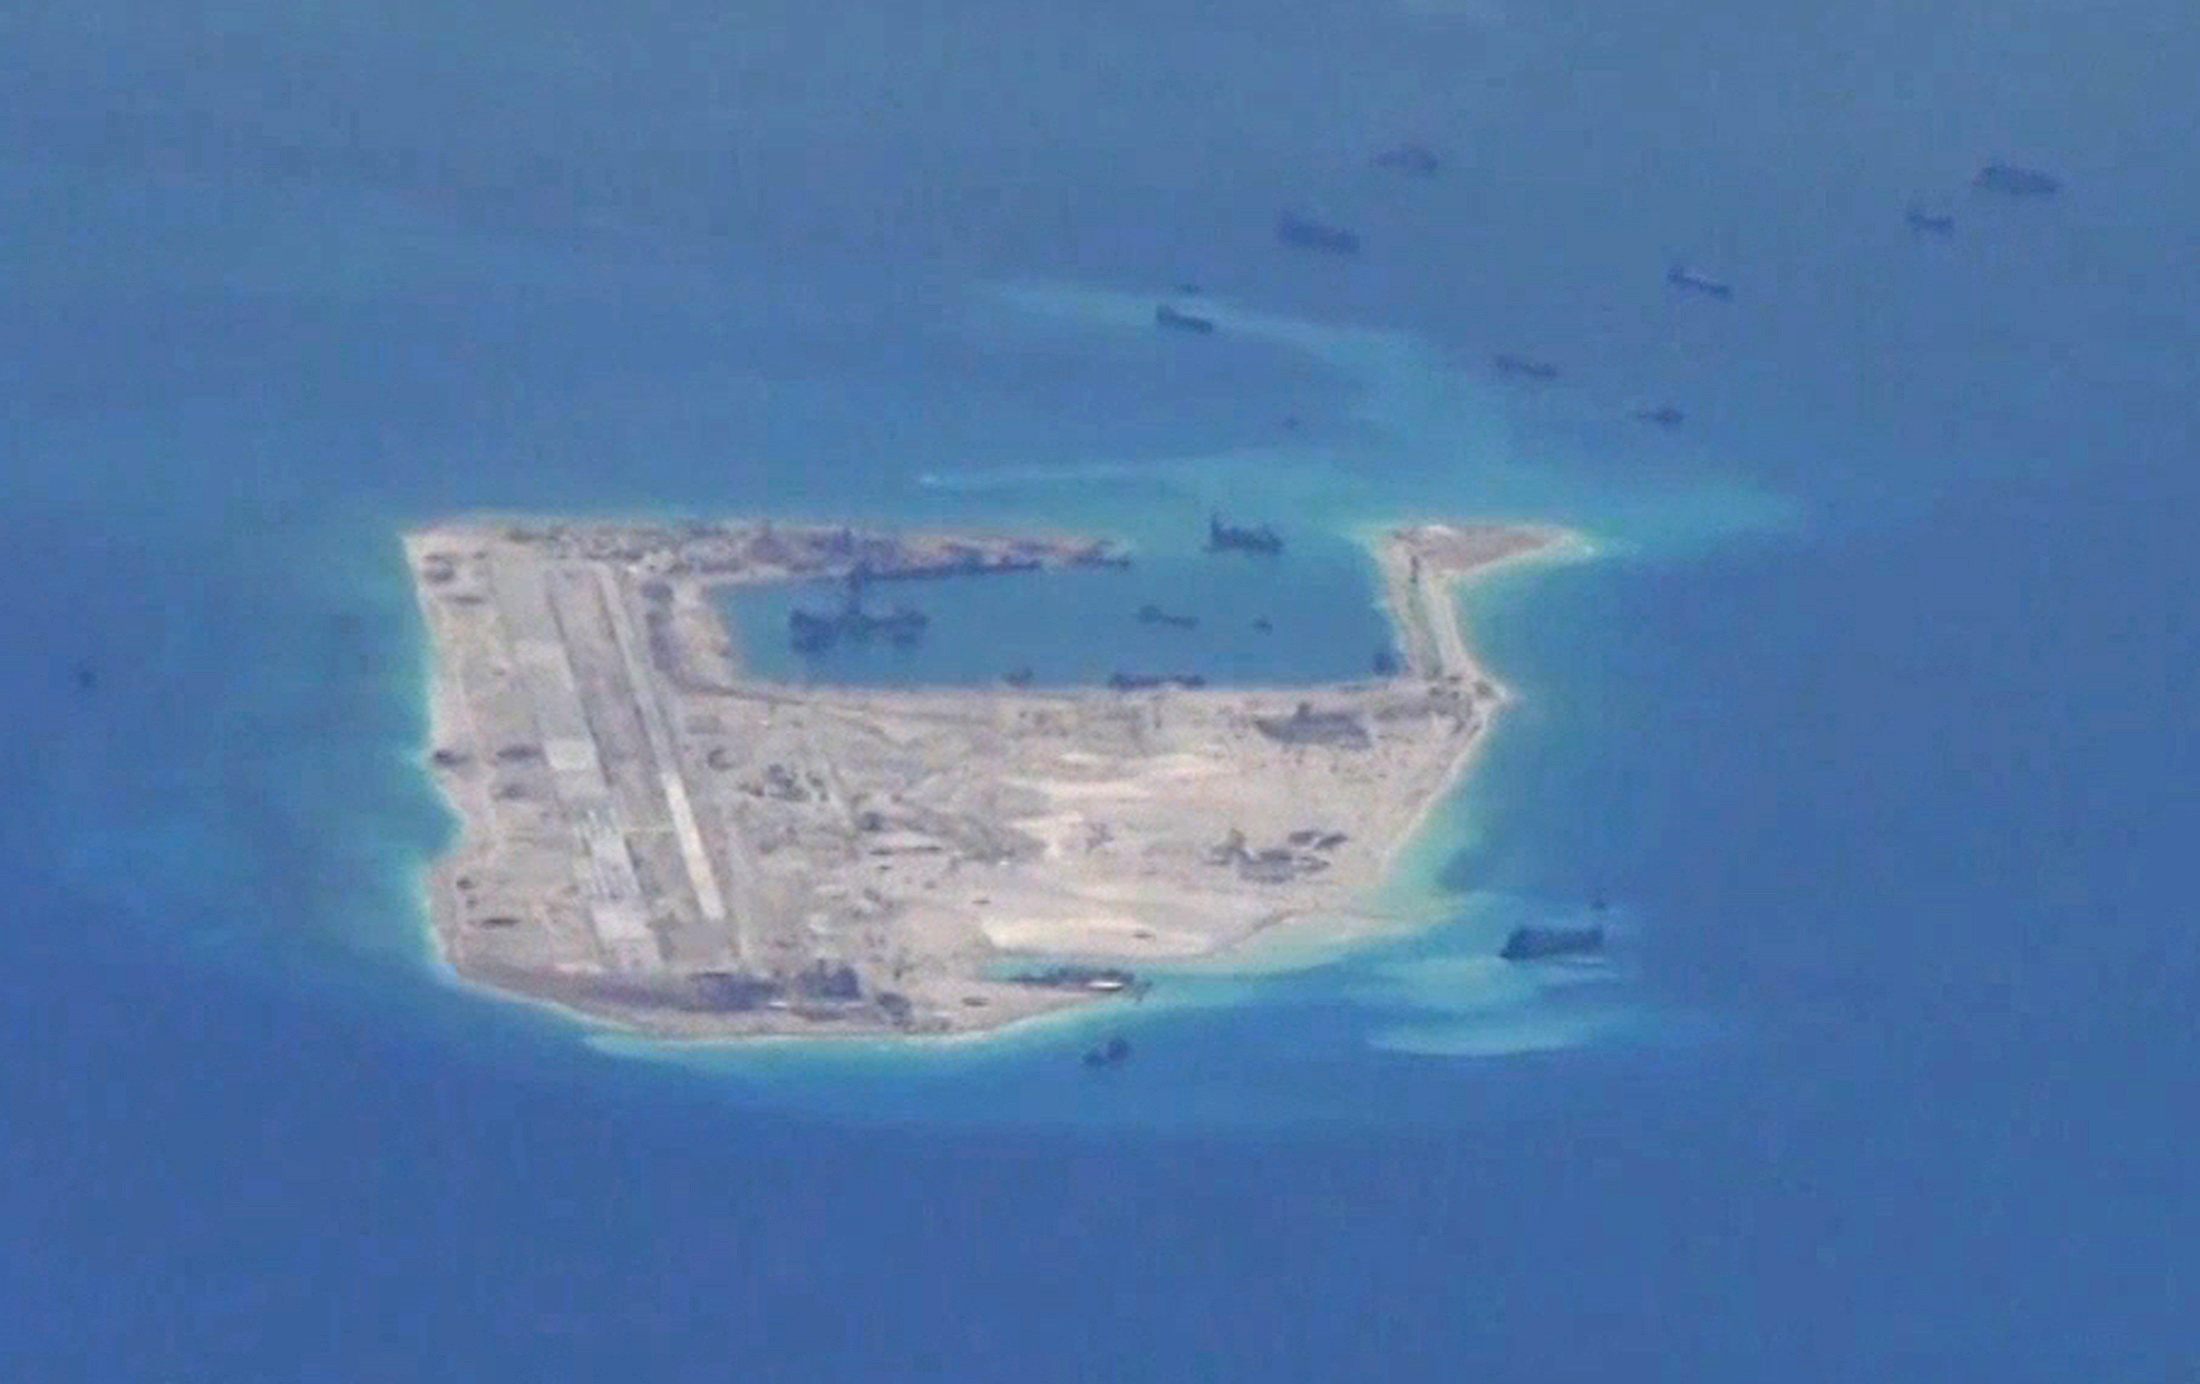 FILE - Chinese dredging vessels are purportedly seen in the waters around Fiery Cross Reef in the disputed Spratly Islands in the South China Sea in this still image from video taken by a P-8A Poseidon surveillance aircraft provided by the United Sta...